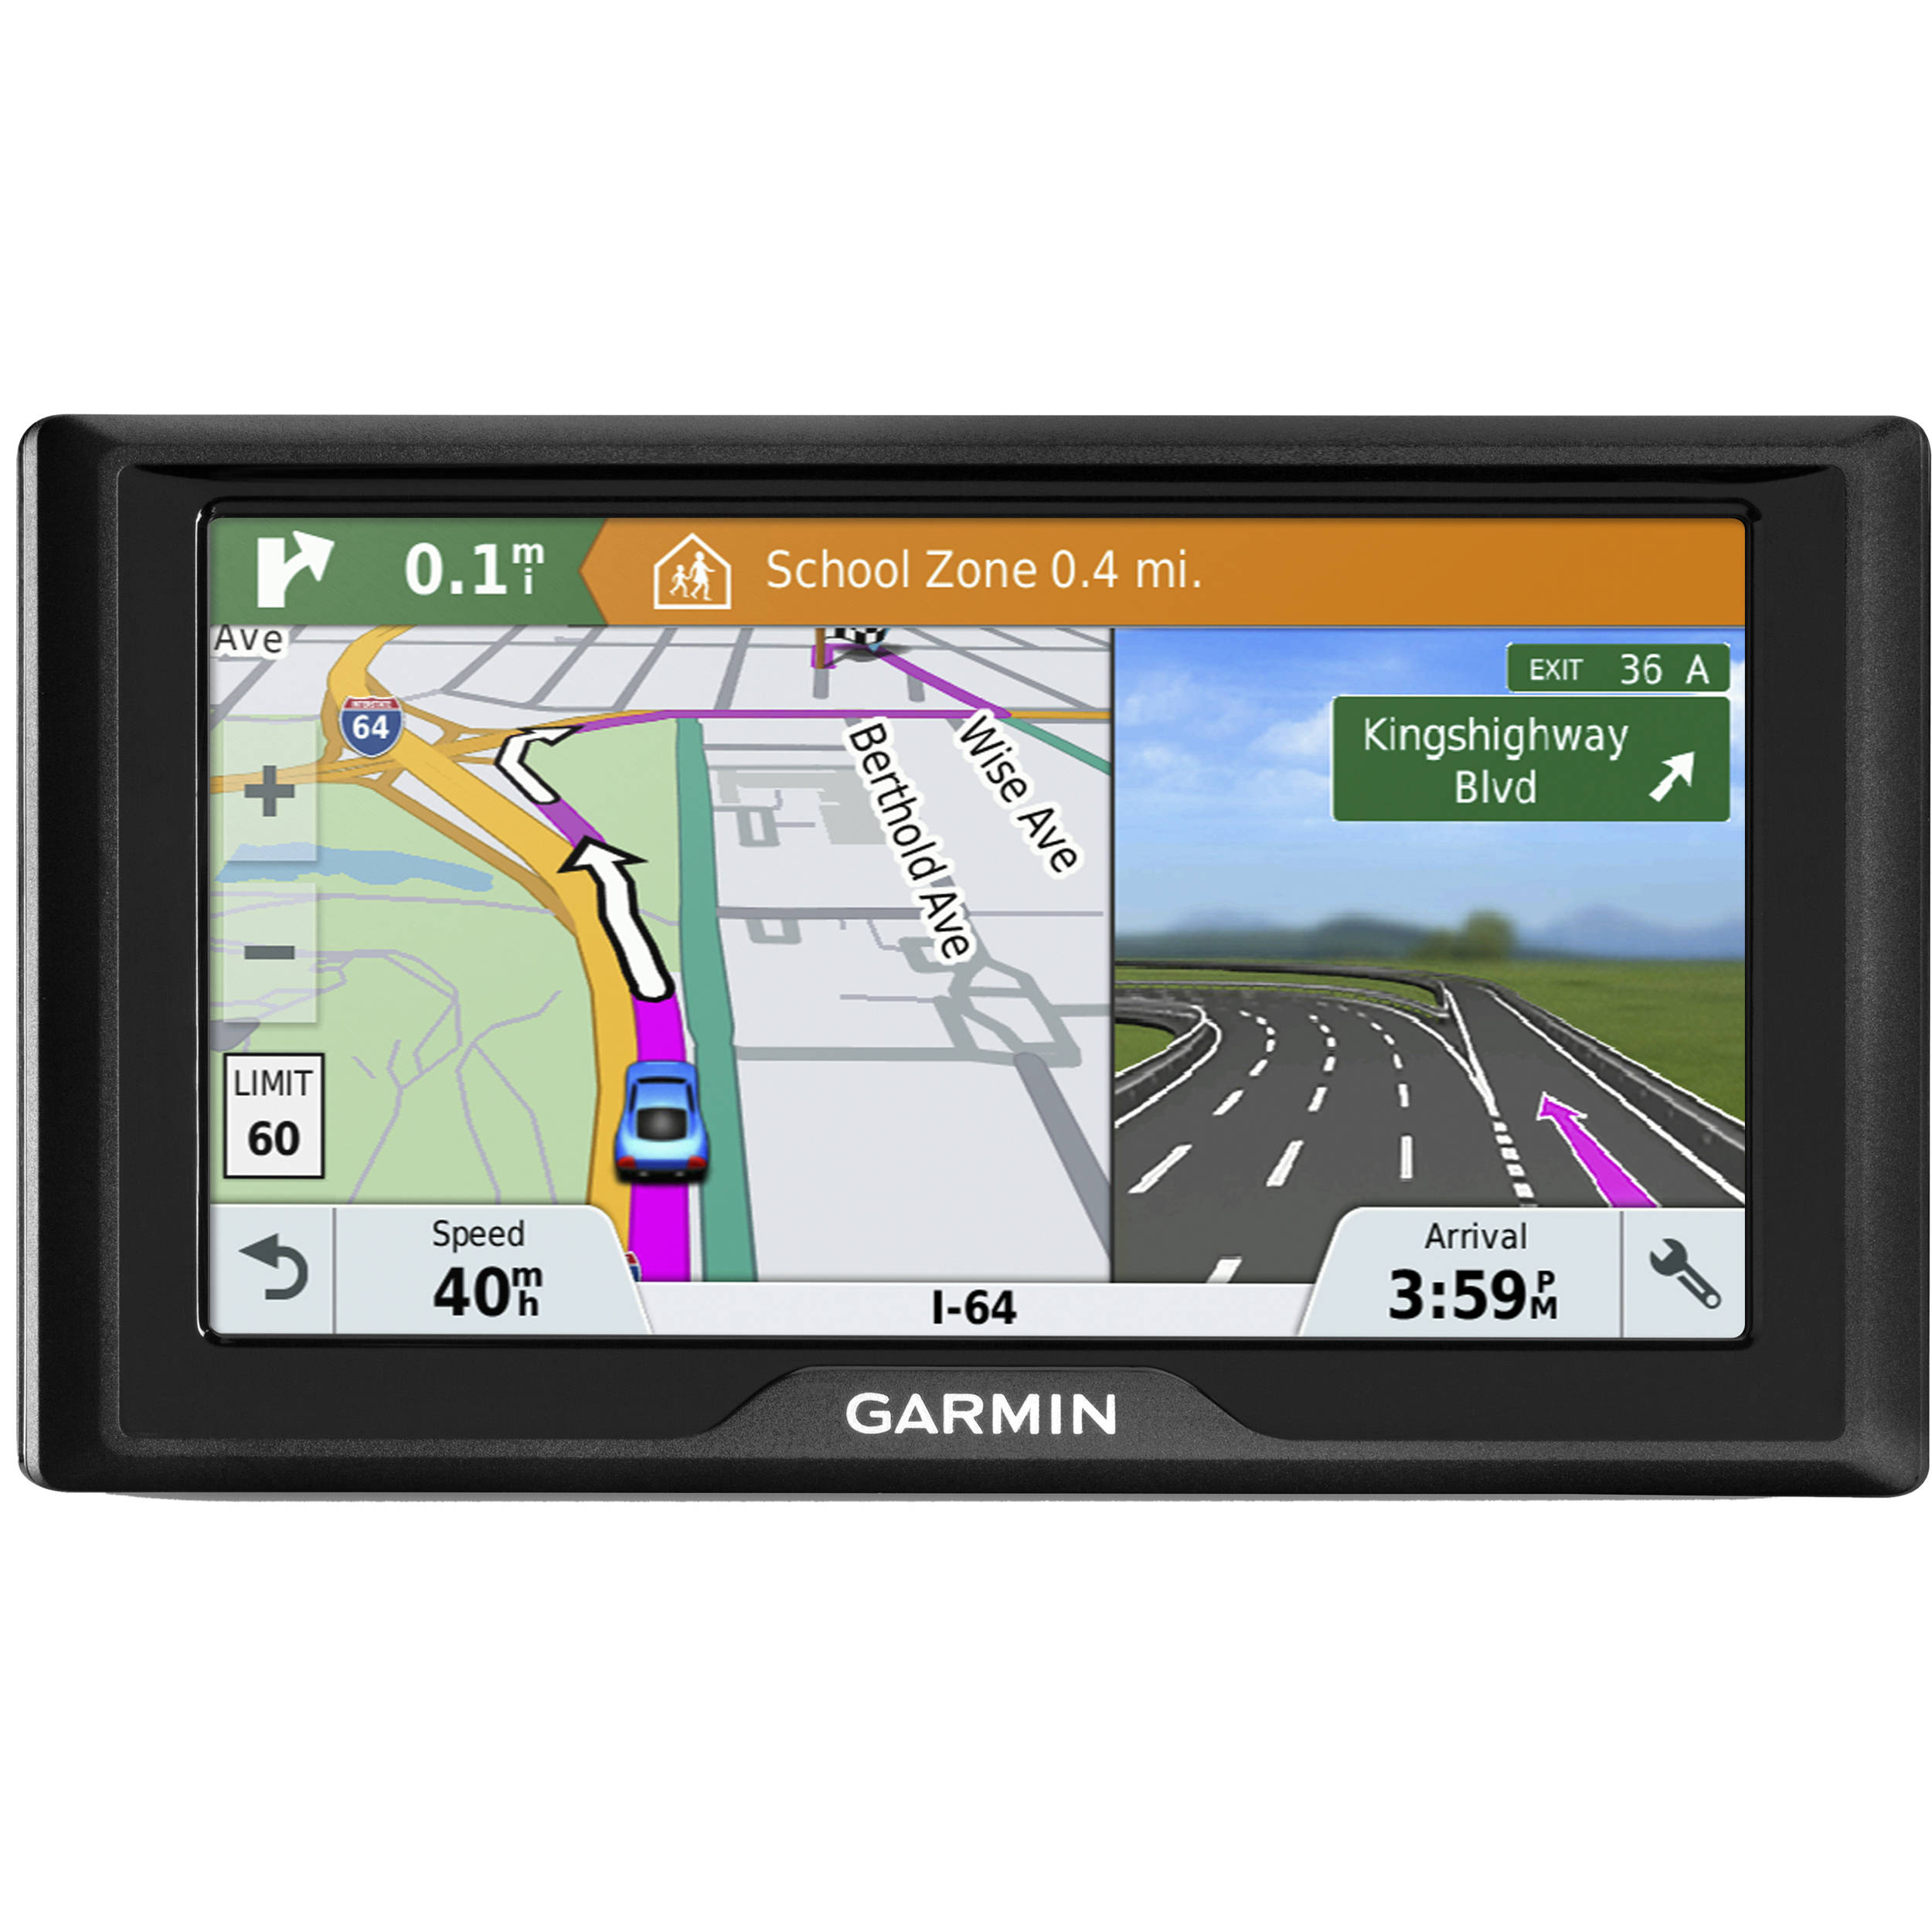 Maps Map Updates Garmin United States >> Garmin Drive 61 Lmt S Navigation System United States Maps Traffic Parking Info